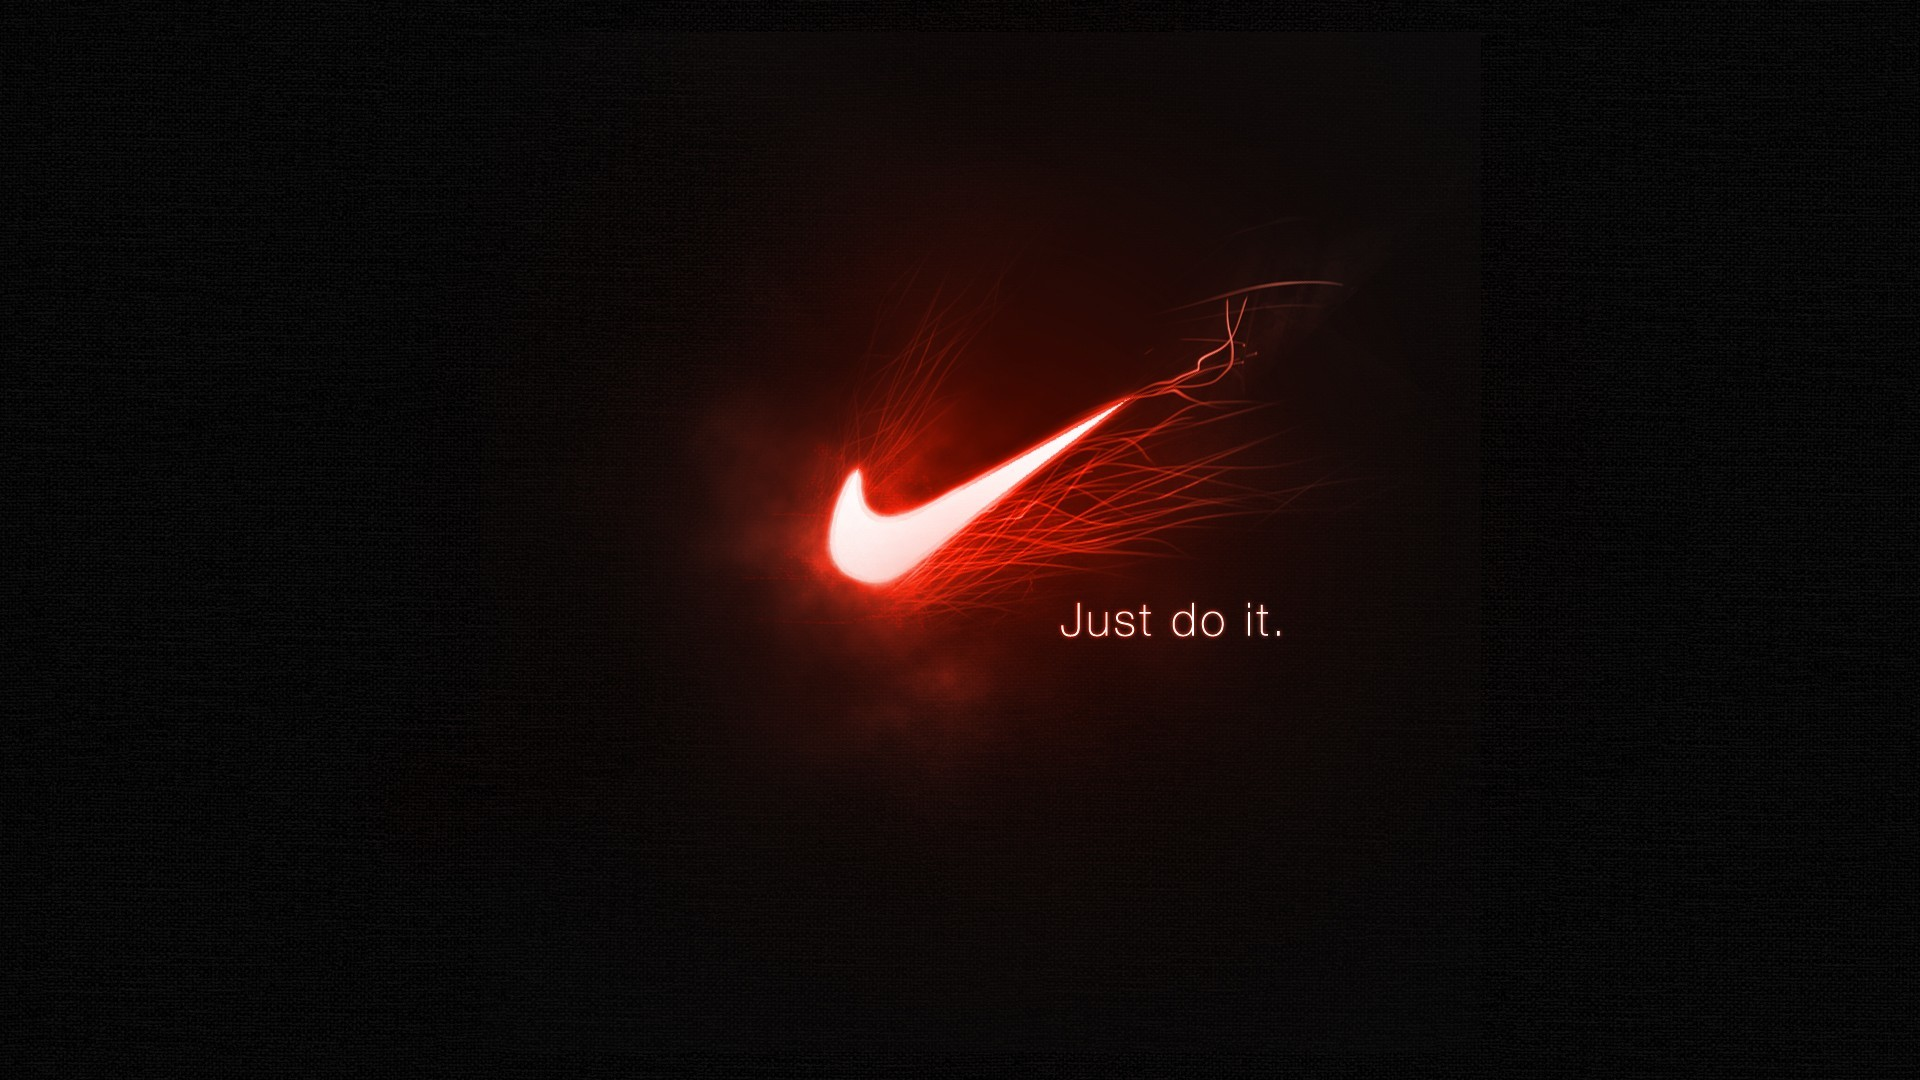 1920x1080 JUST DO IT!